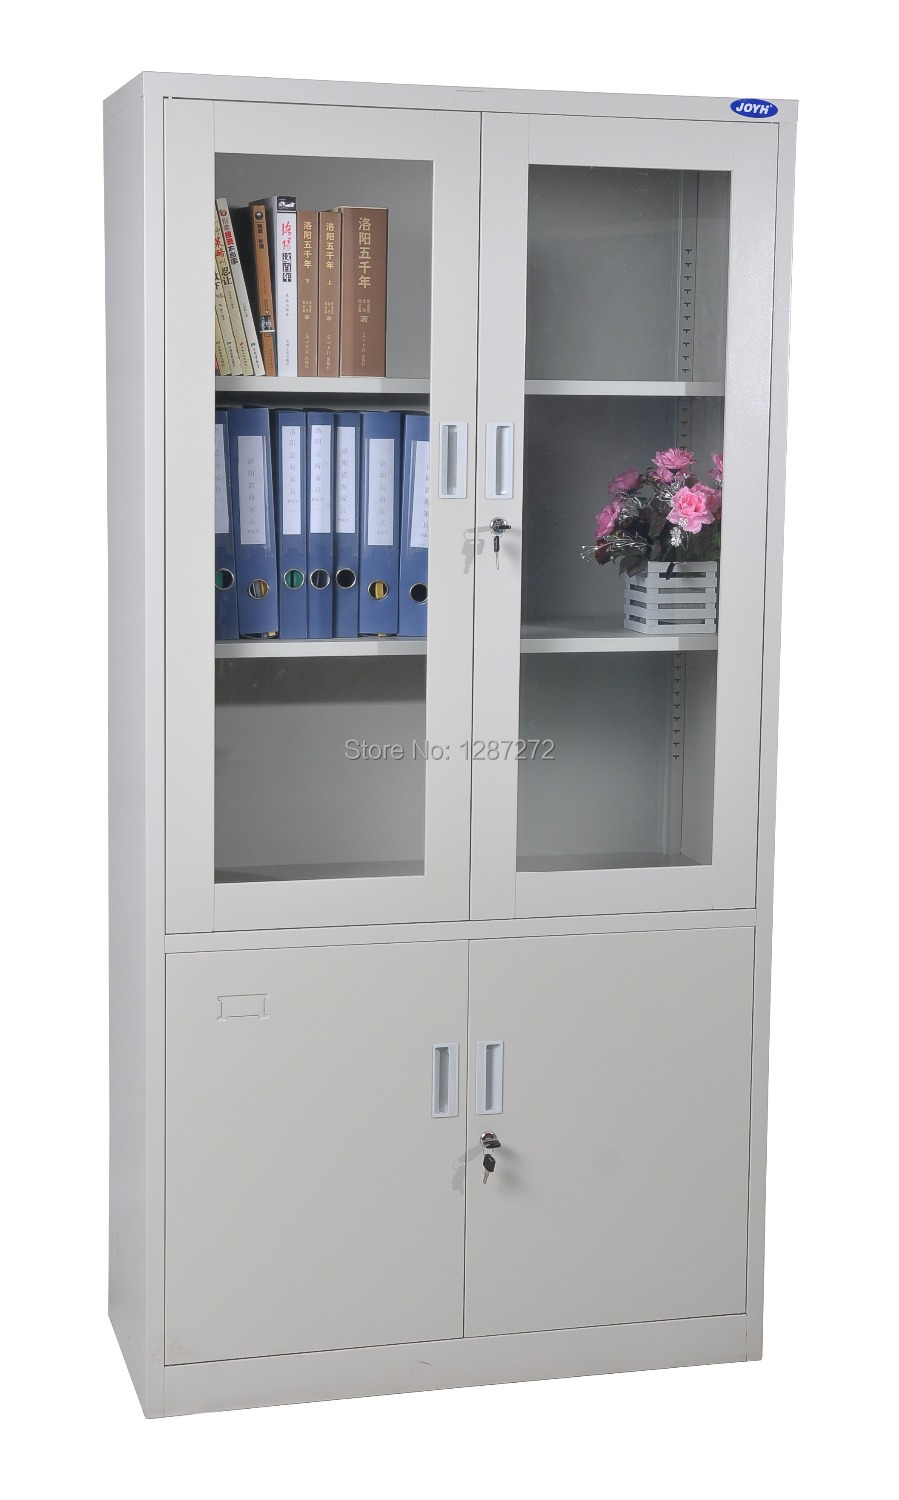 High Quality Office Steel Filing Cabinet Instrument On Aliexpress Alibaba Group